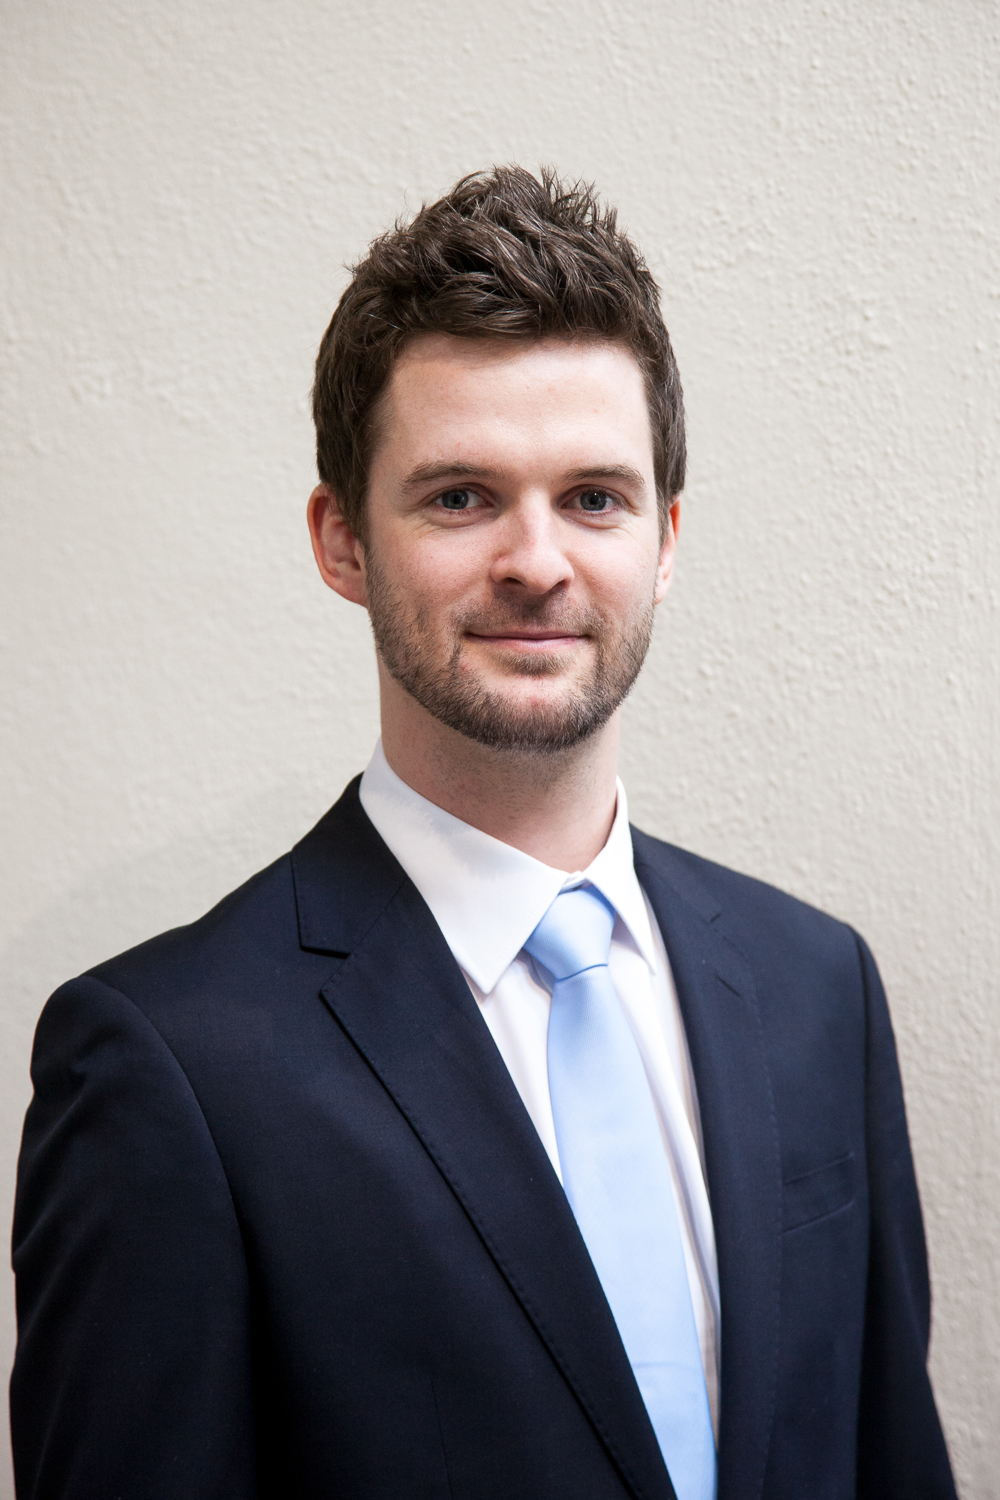 CIAN TWOMEY - ASSOCIATE    CIAN.TWOMEY@CSCONSULTING.IE